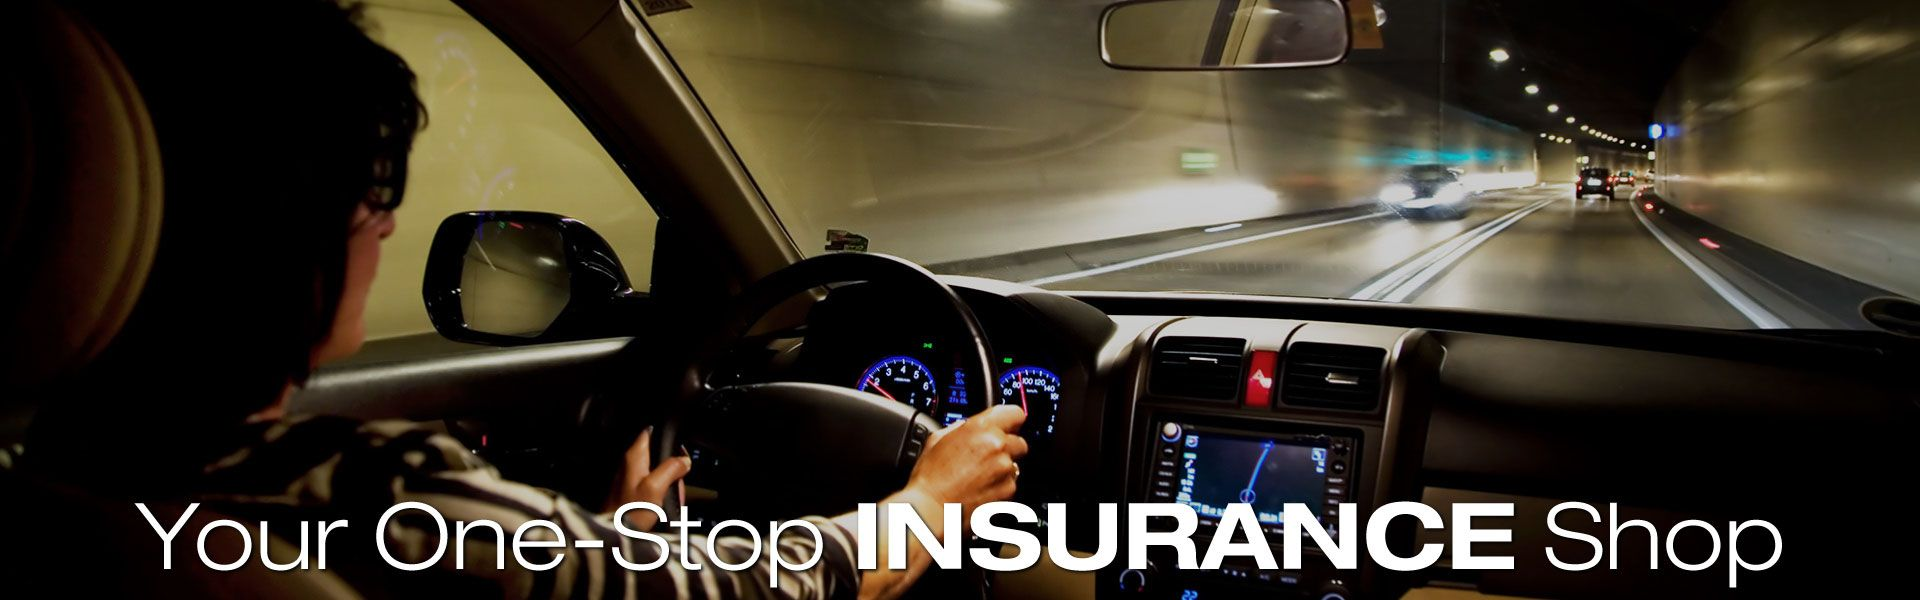 Your One-Stop Insurance Shop | Woman driving at night